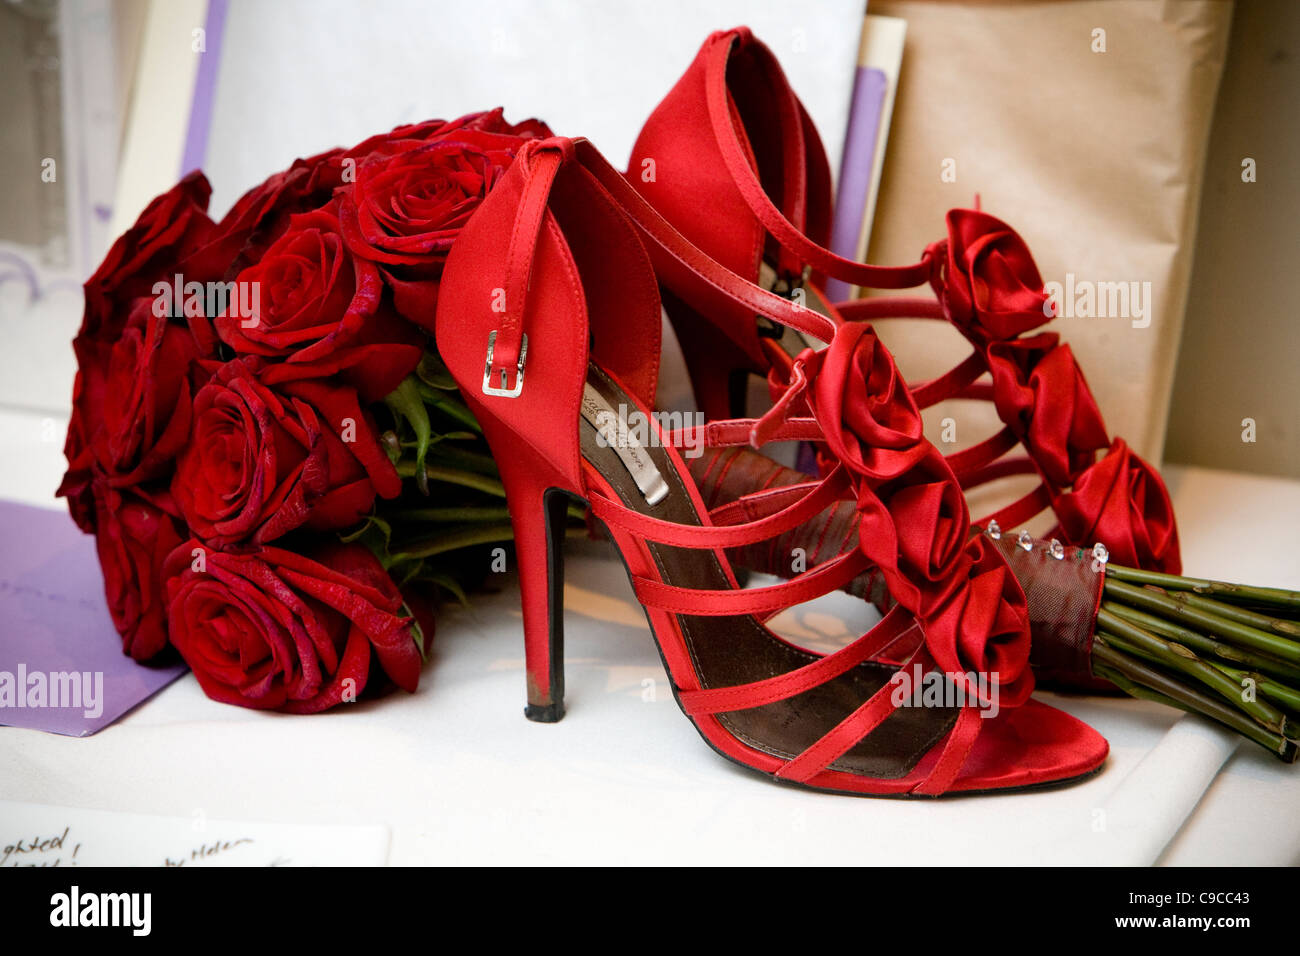 red wedding shoes with red roses and envelopes stock photo 40225587